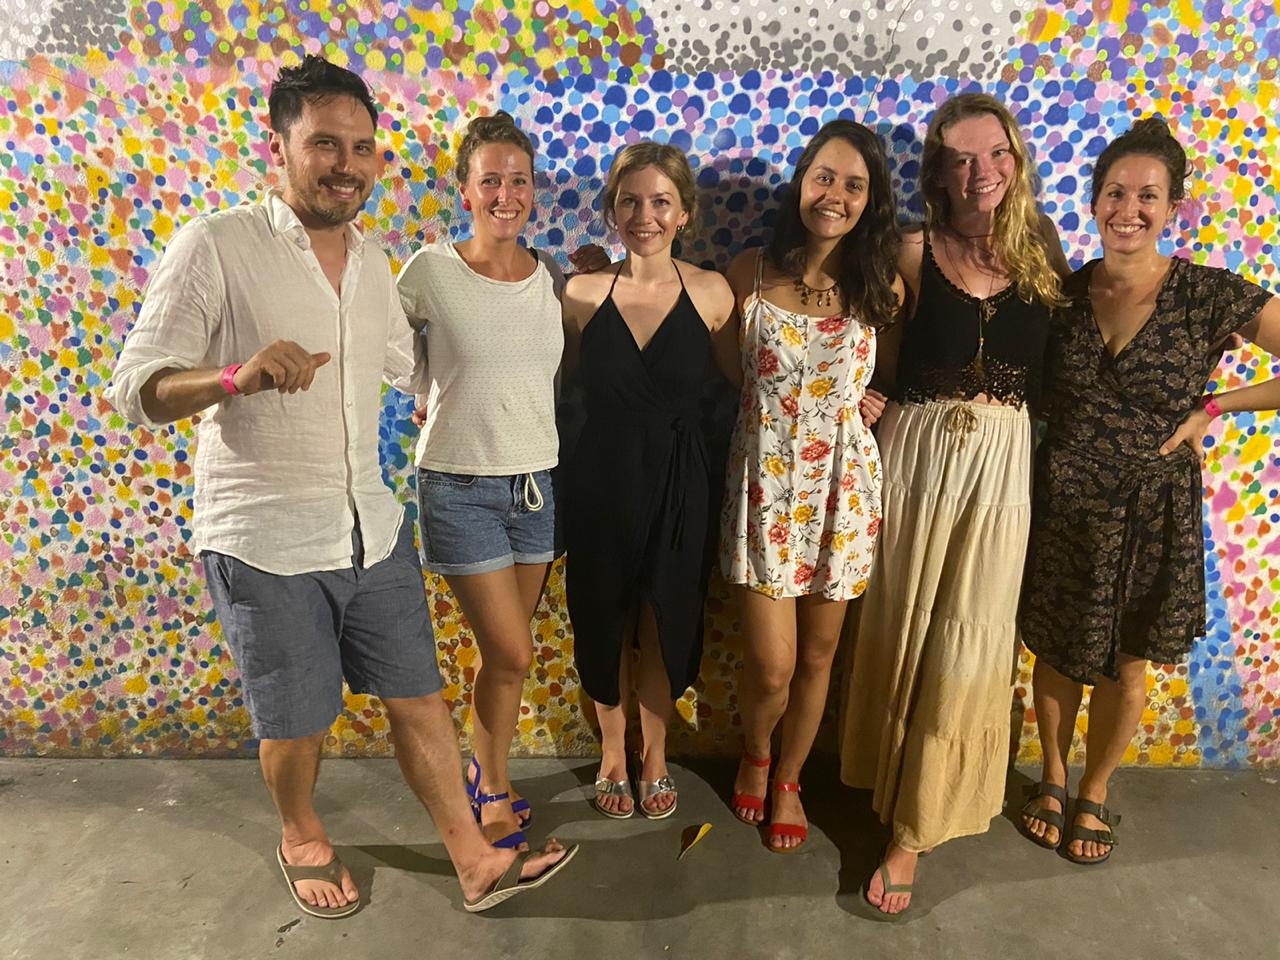 Best Night ever at Lapa. Students in front of the sambodromo mural